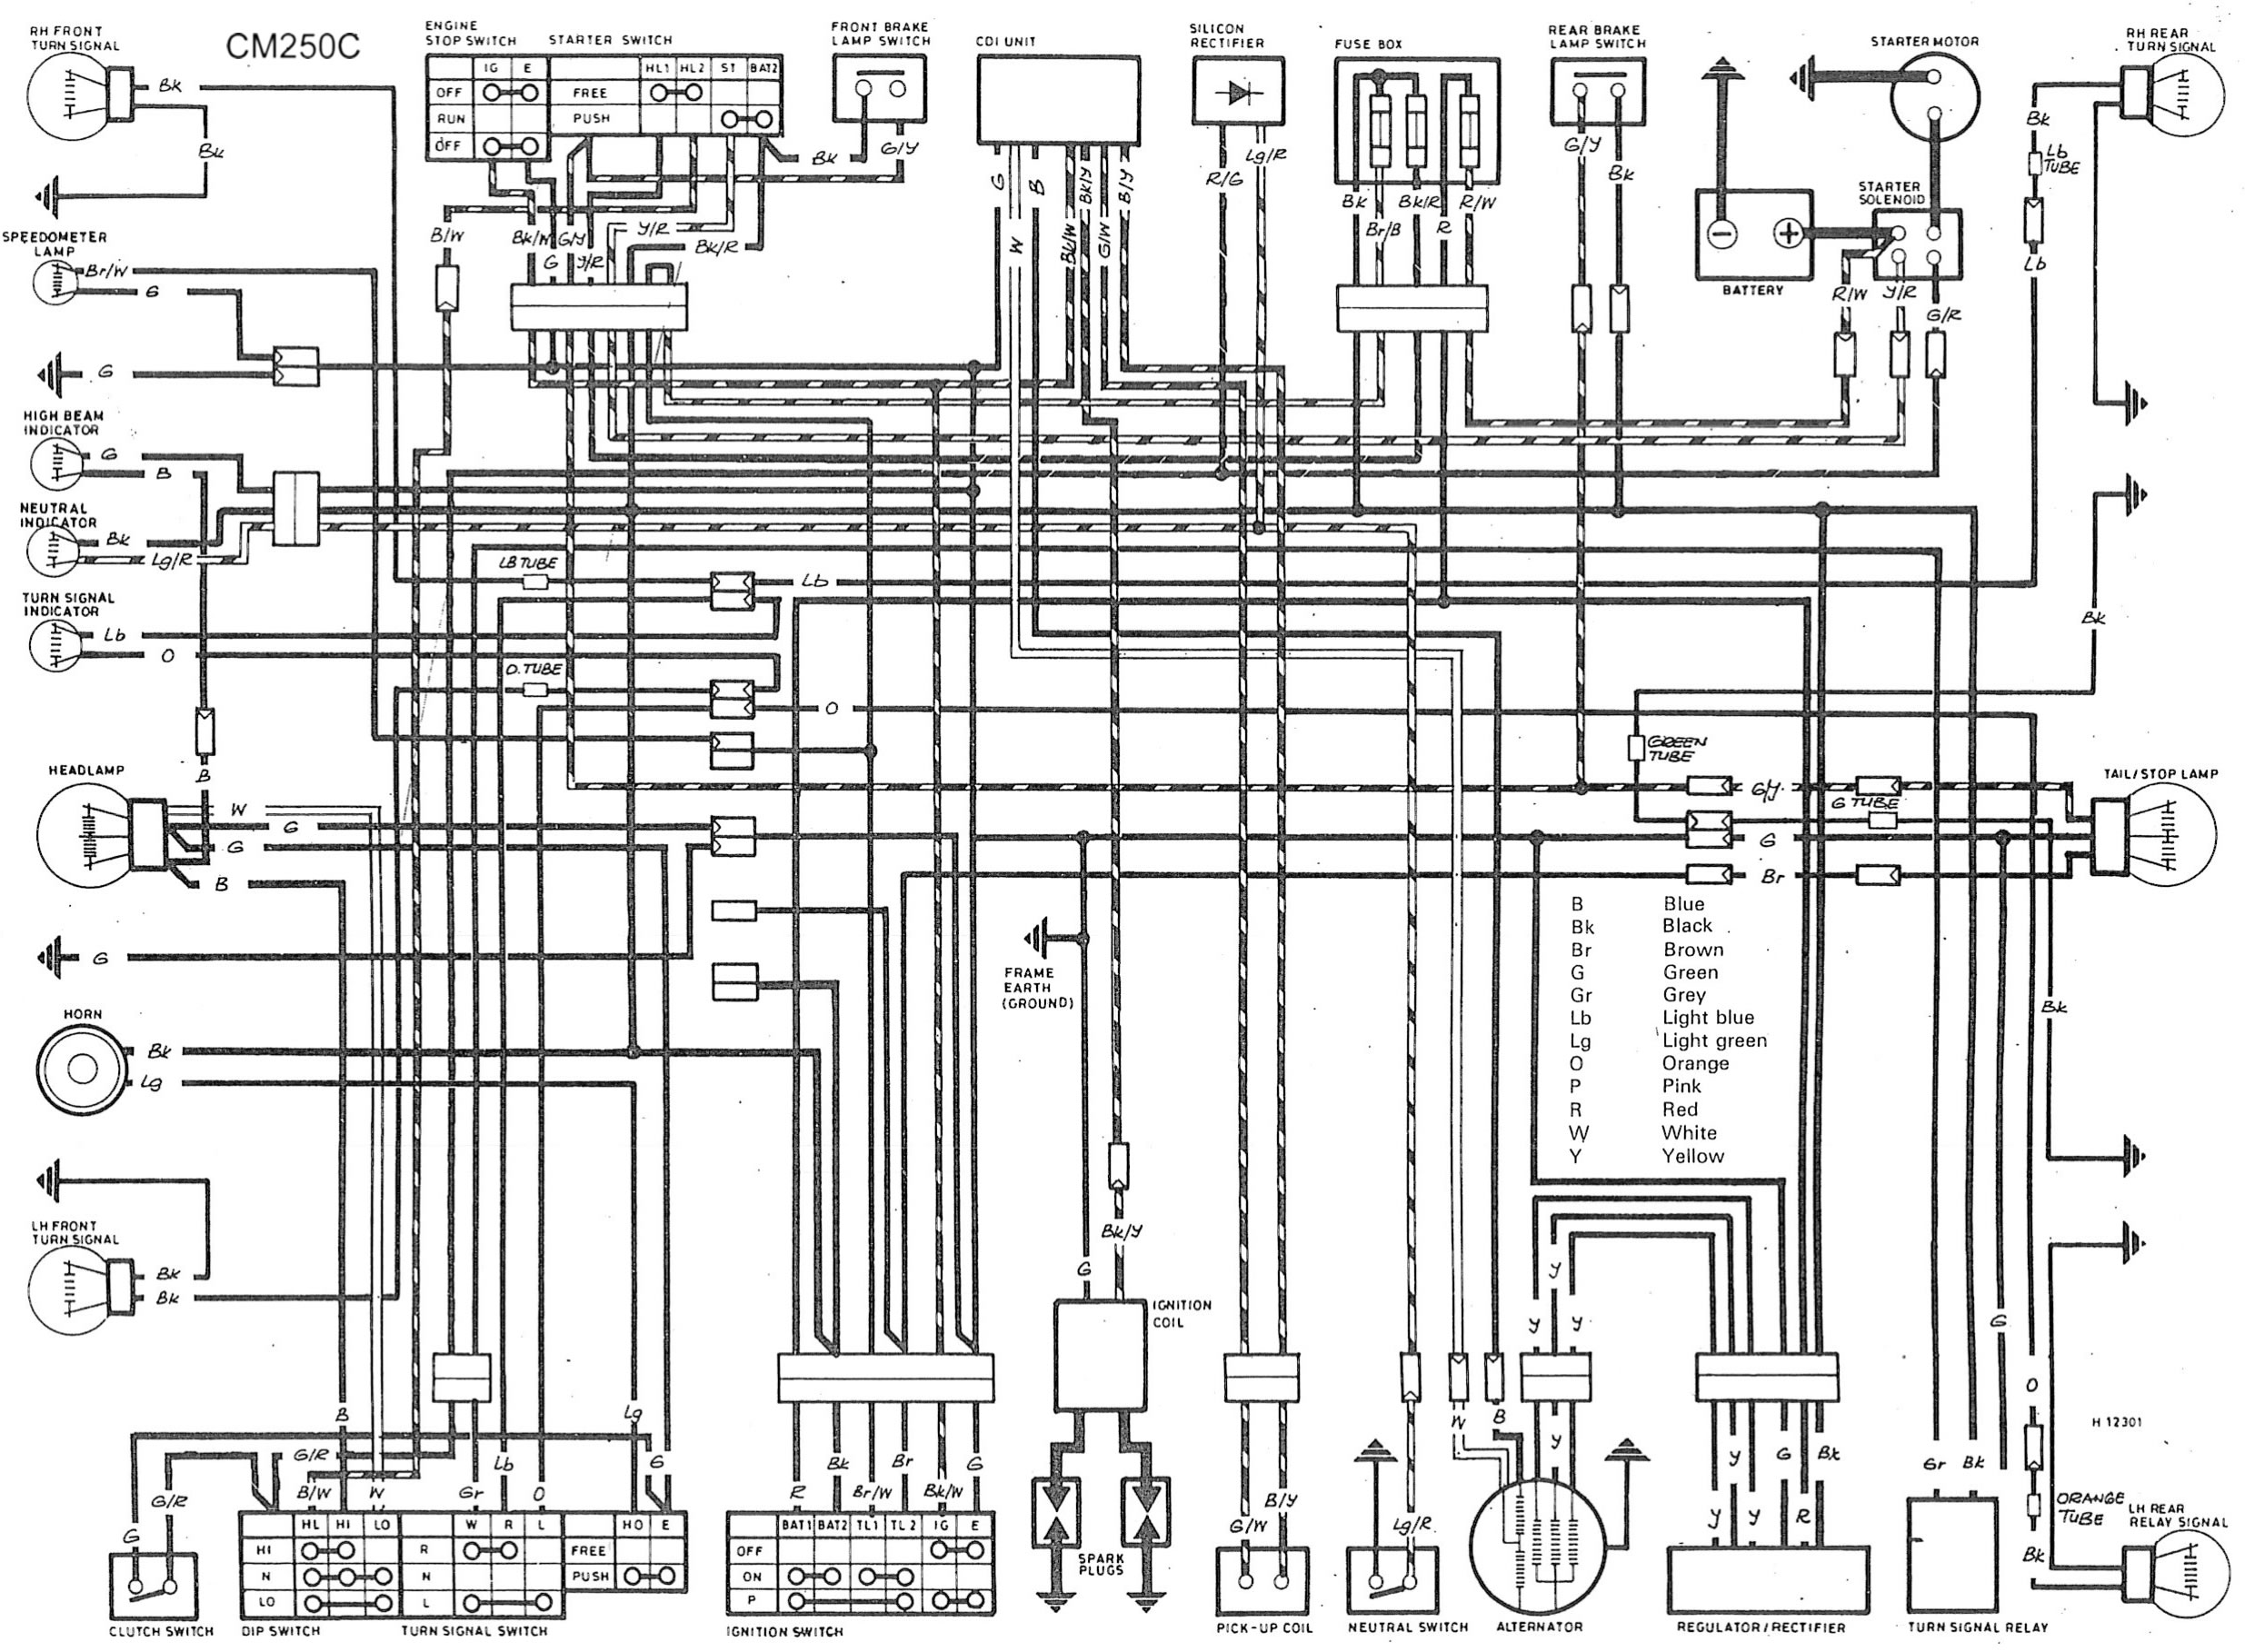 cb 750 1991 color wiring diagram best part of wiring diagram